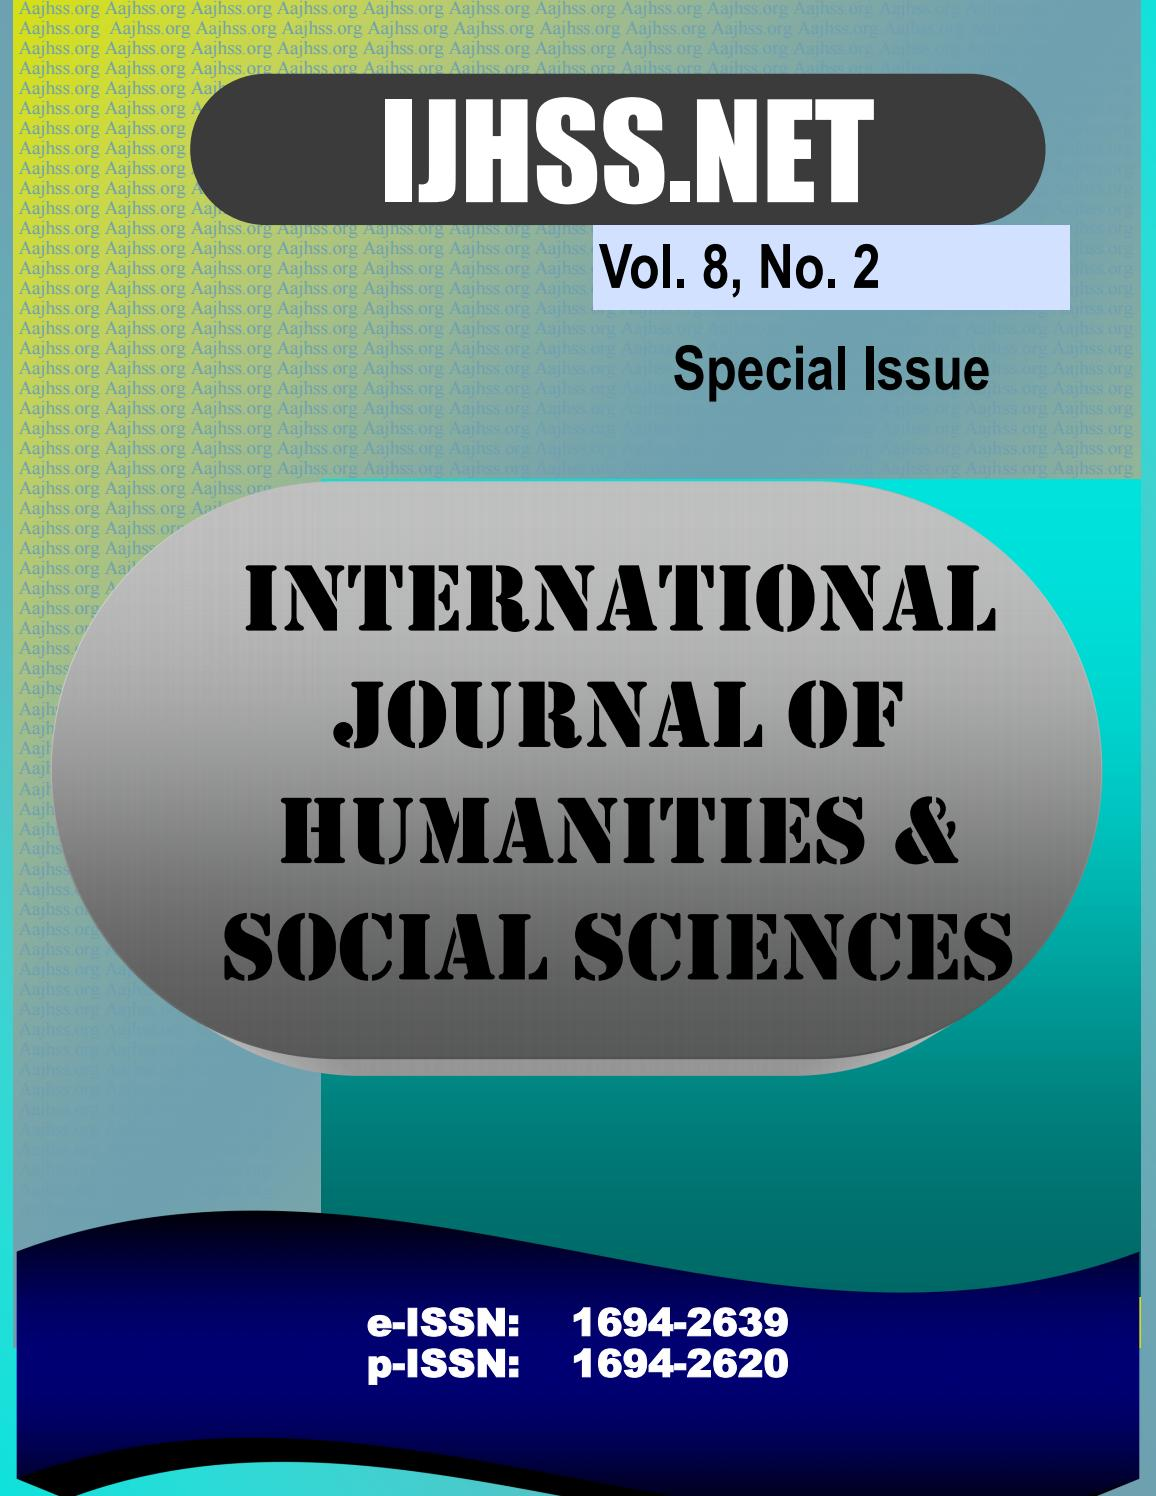 Vol 8 no 2 special issue by IJHSS - issuu